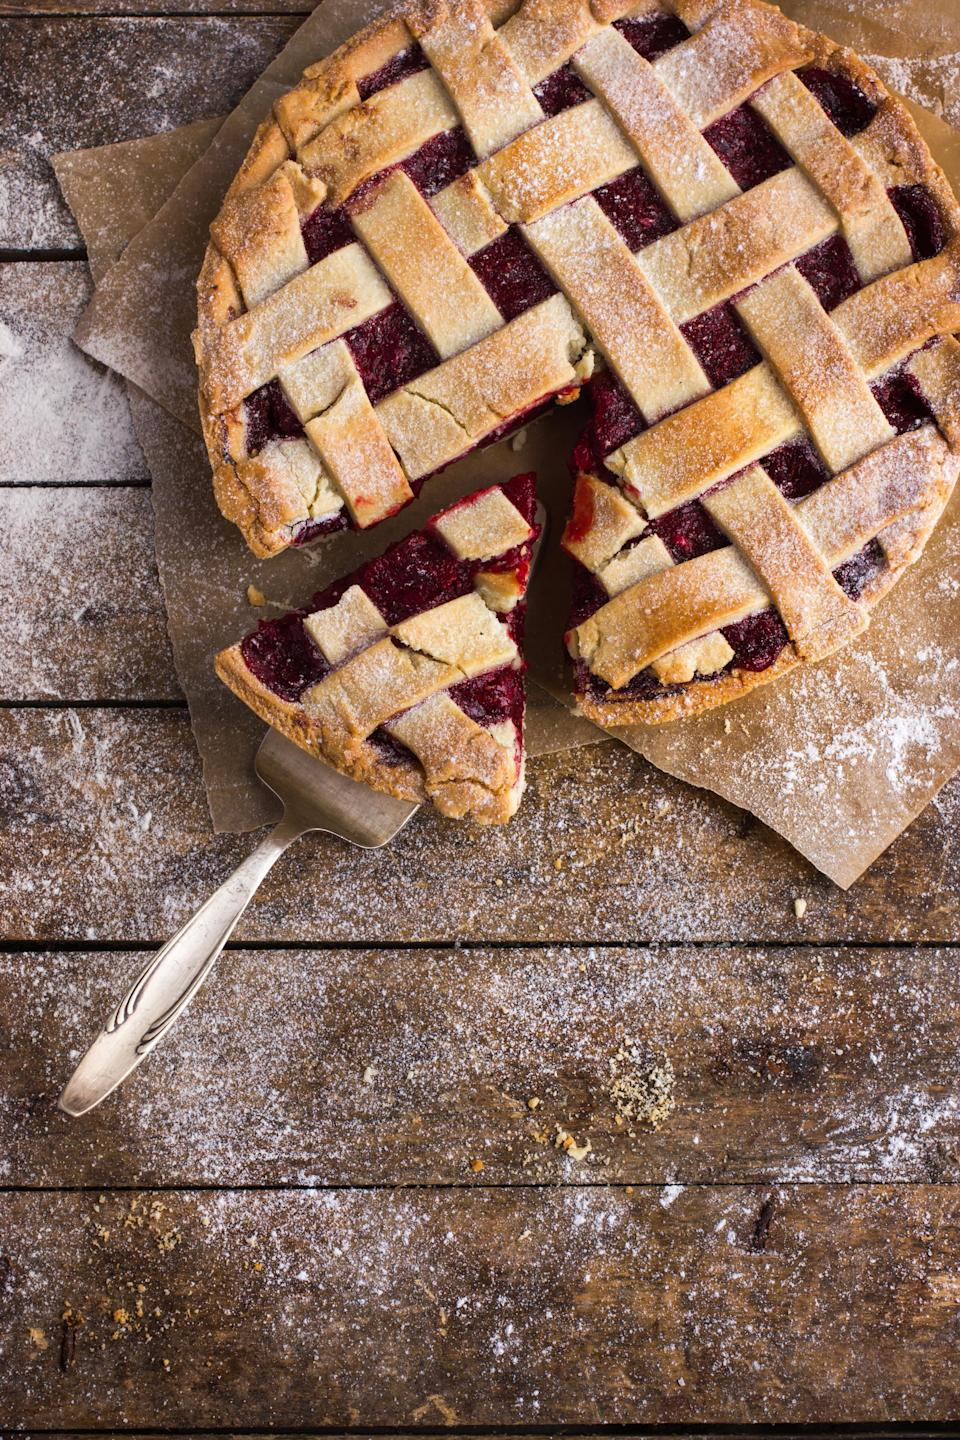 """<p>Linzer tarts are delicious and impressive any time of year, and this one is made Passover-friendly with the use of ground almonds, walnuts and hazelnuts in the crust along with potato starch. You can adjust the tart to your family's tastes by using any flavor jam you prefer.</p> <p><a href=""""https://www.thedailymeal.com/recipes/gluten-free-linzer-tart-recipe?referrer=yahoo&category=beauty_food&include_utm=1&utm_medium=referral&utm_source=yahoo&utm_campaign=feed"""" rel=""""nofollow noopener"""" target=""""_blank"""" data-ylk=""""slk:For the Gluten-Free Linzer Tart recipe, click here."""" class=""""link rapid-noclick-resp"""">For the Gluten-Free Linzer Tart recipe, click here.</a></p>"""